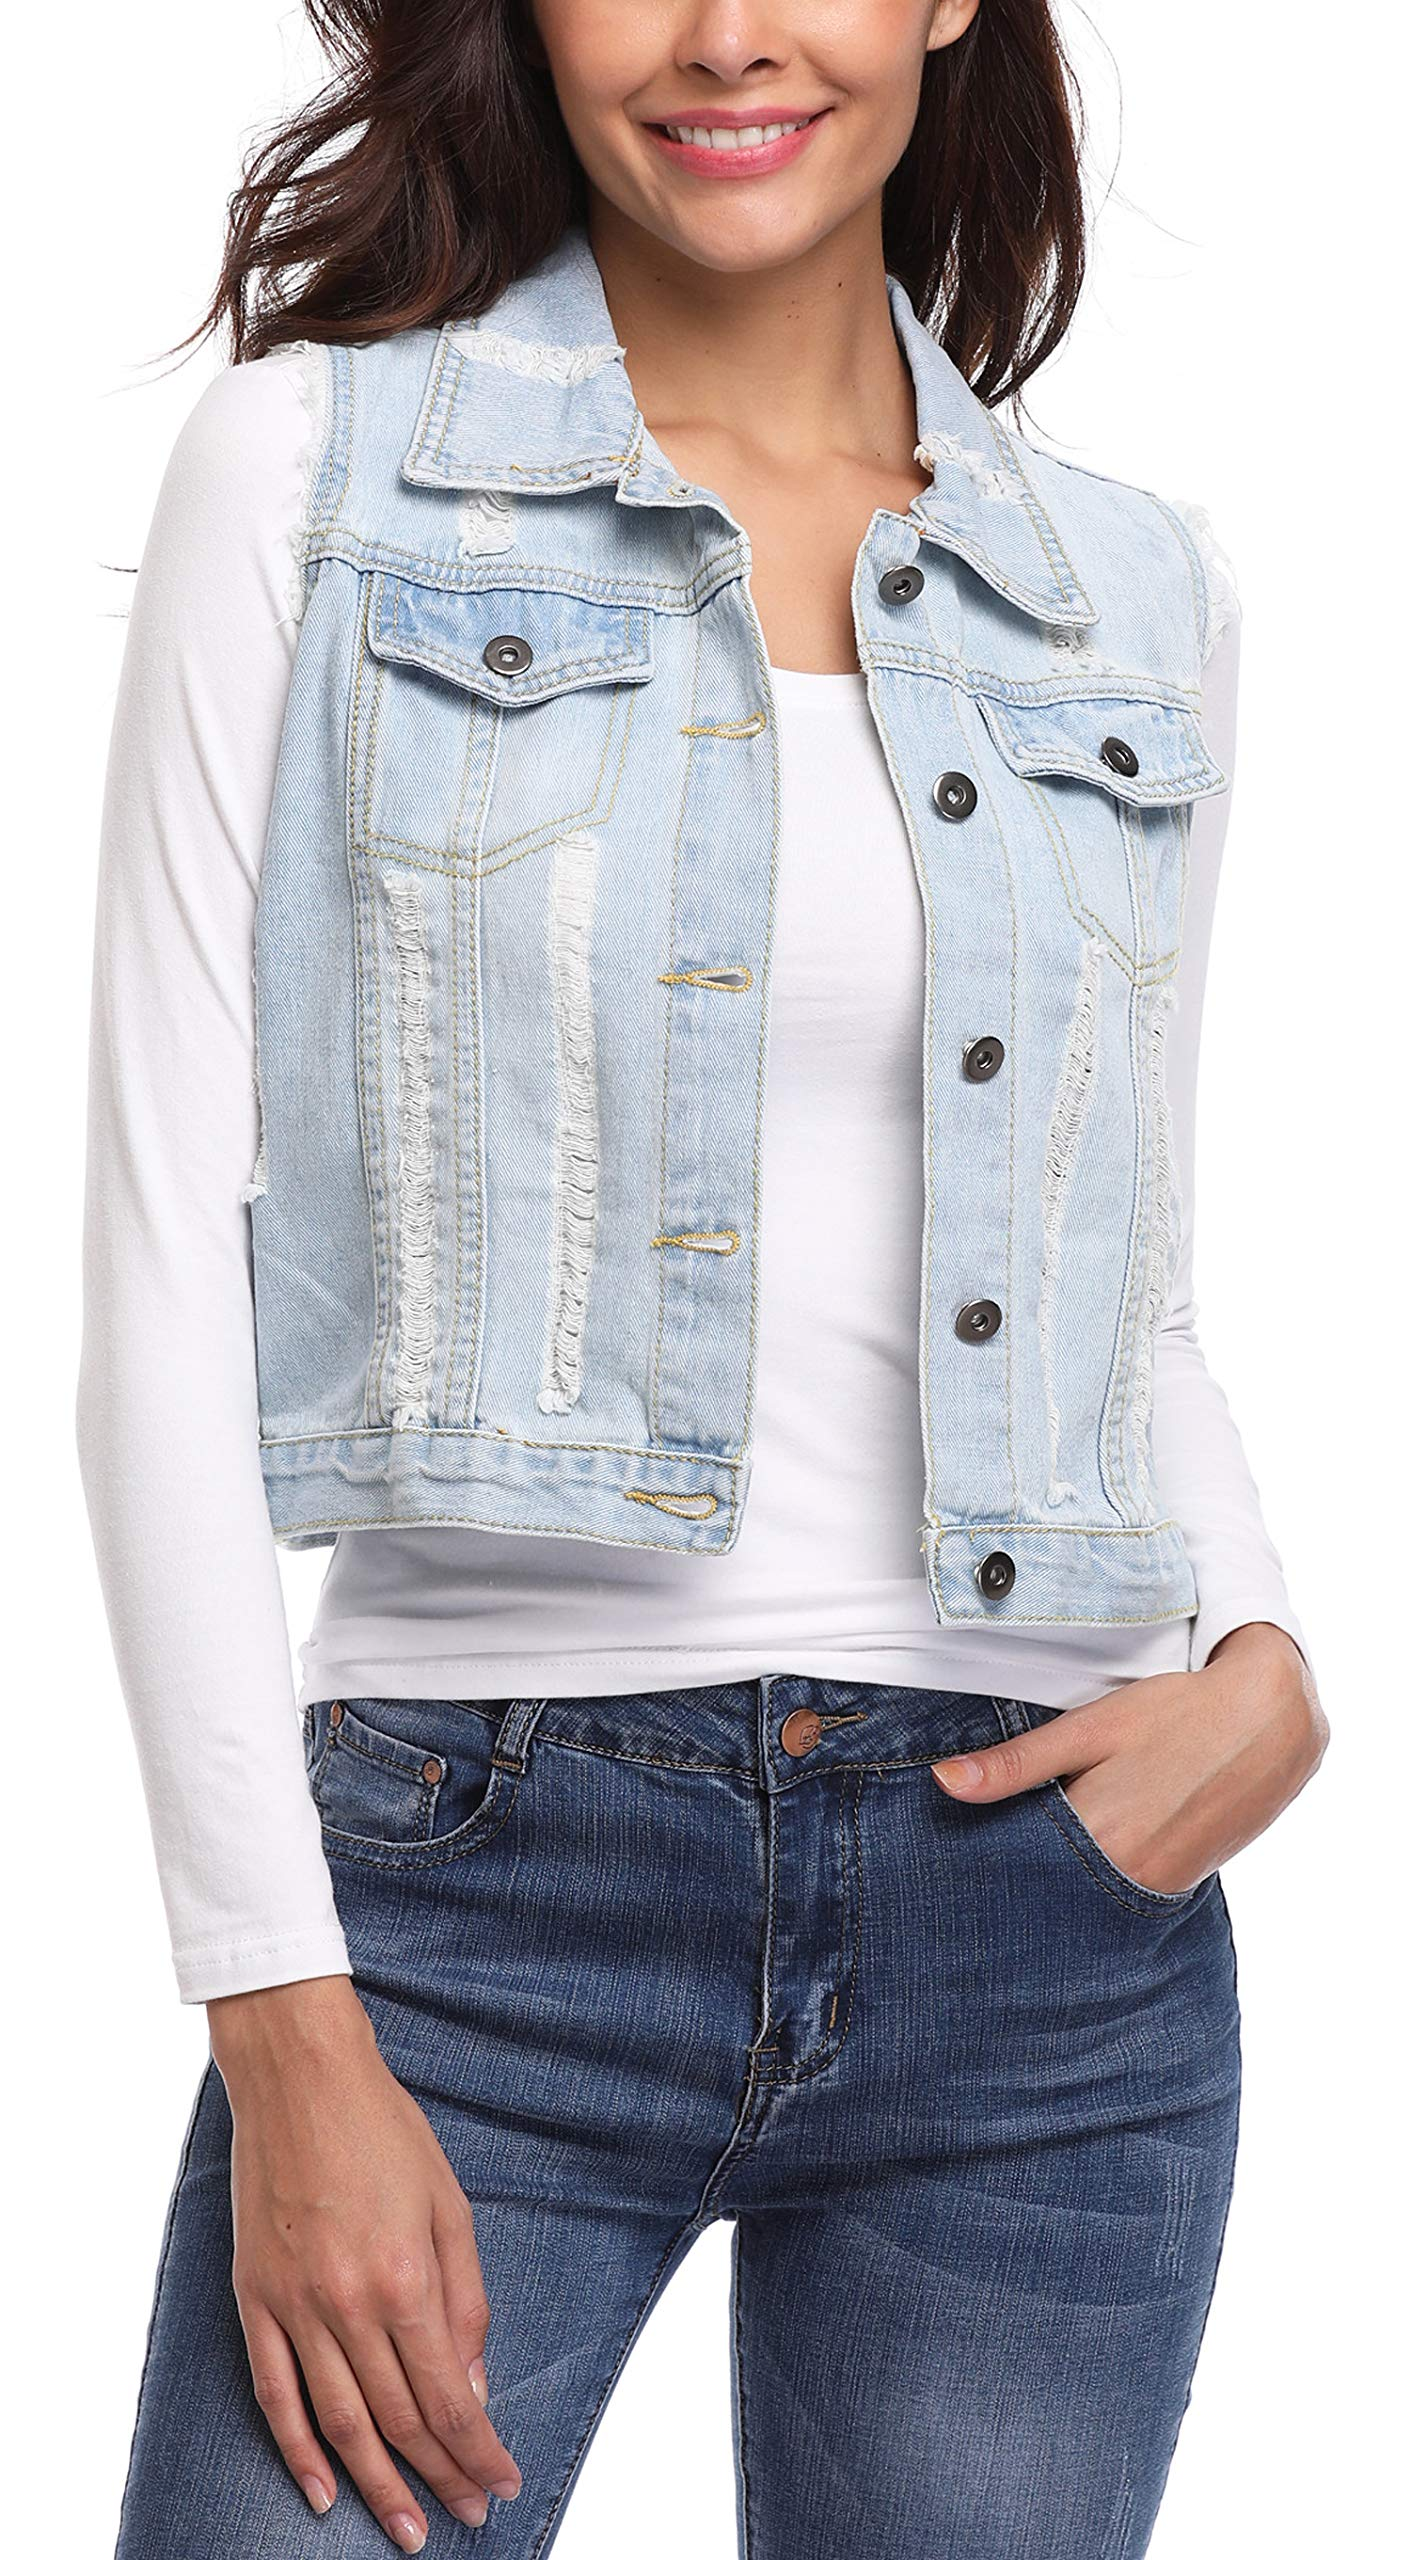 MISS MOLY Women's Sleeveless Denim Jacket Vest Turn Down Collar Buttoned Frayed Washed w 2 Chest Flap Pockets Light Blue XL by MISS MOLY (Image #2)